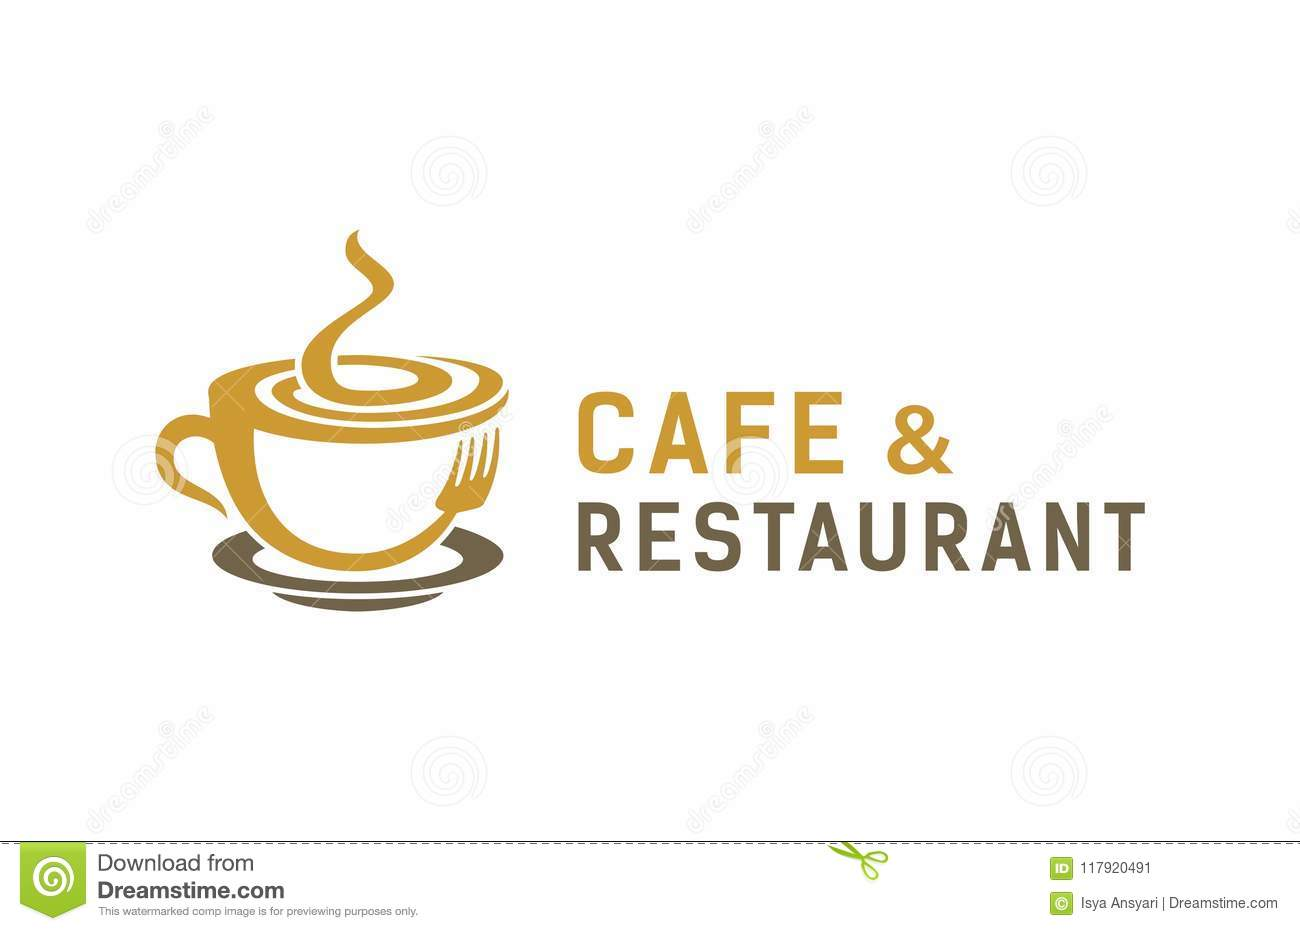 Cafe Restaurant Logo Design Stock Vector Illustration Of Abstract Printing 117920491